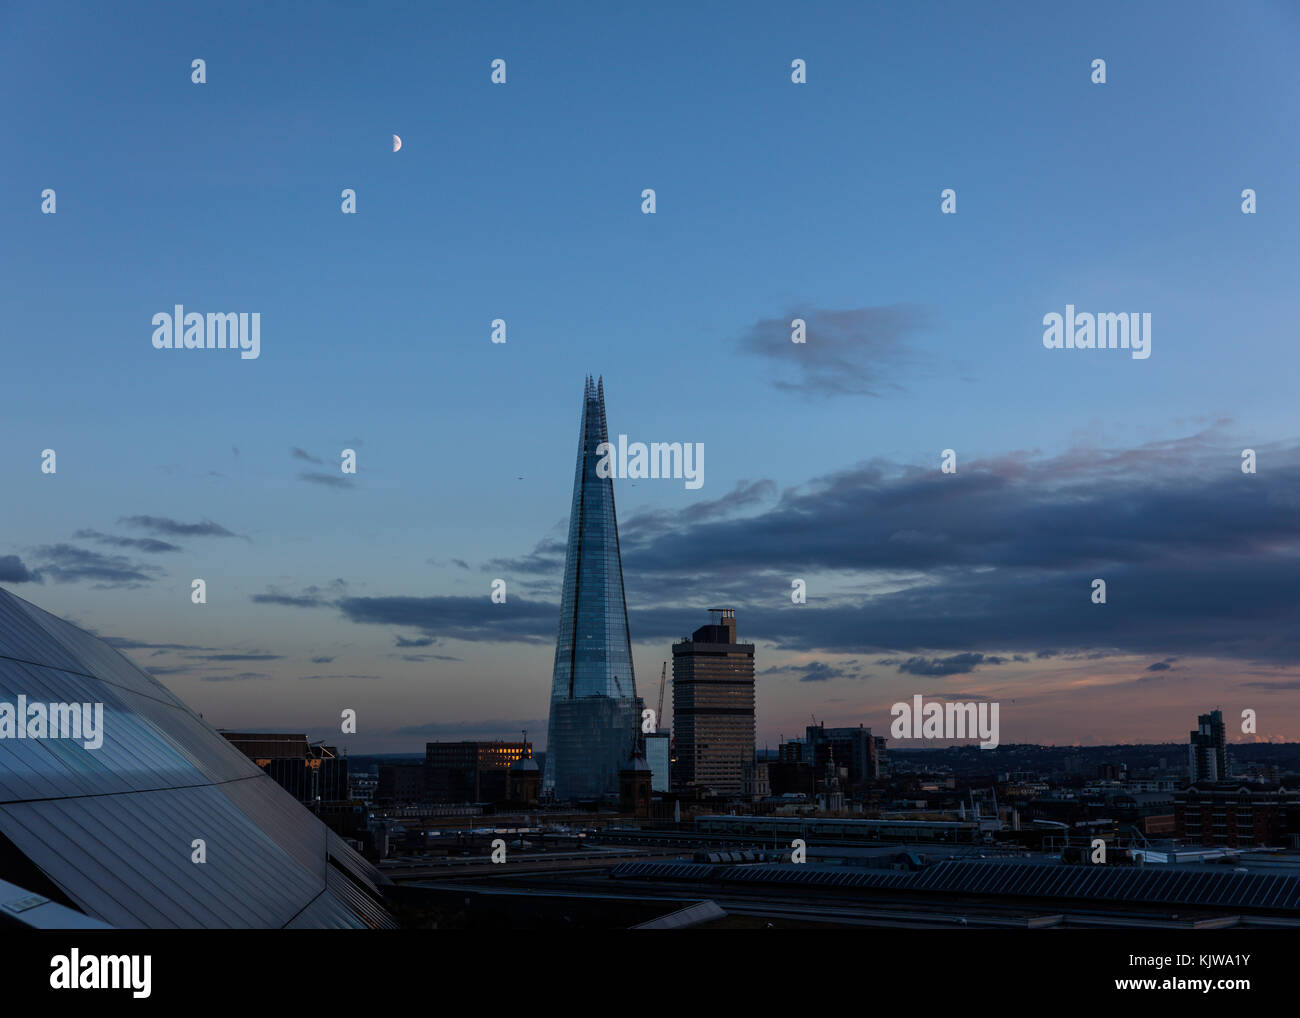 London, UK. 26th November, 2017. UK weather. Beautiful sunset on a cold, sunny winter day. Viwe of Shard, with moon - Stock Image